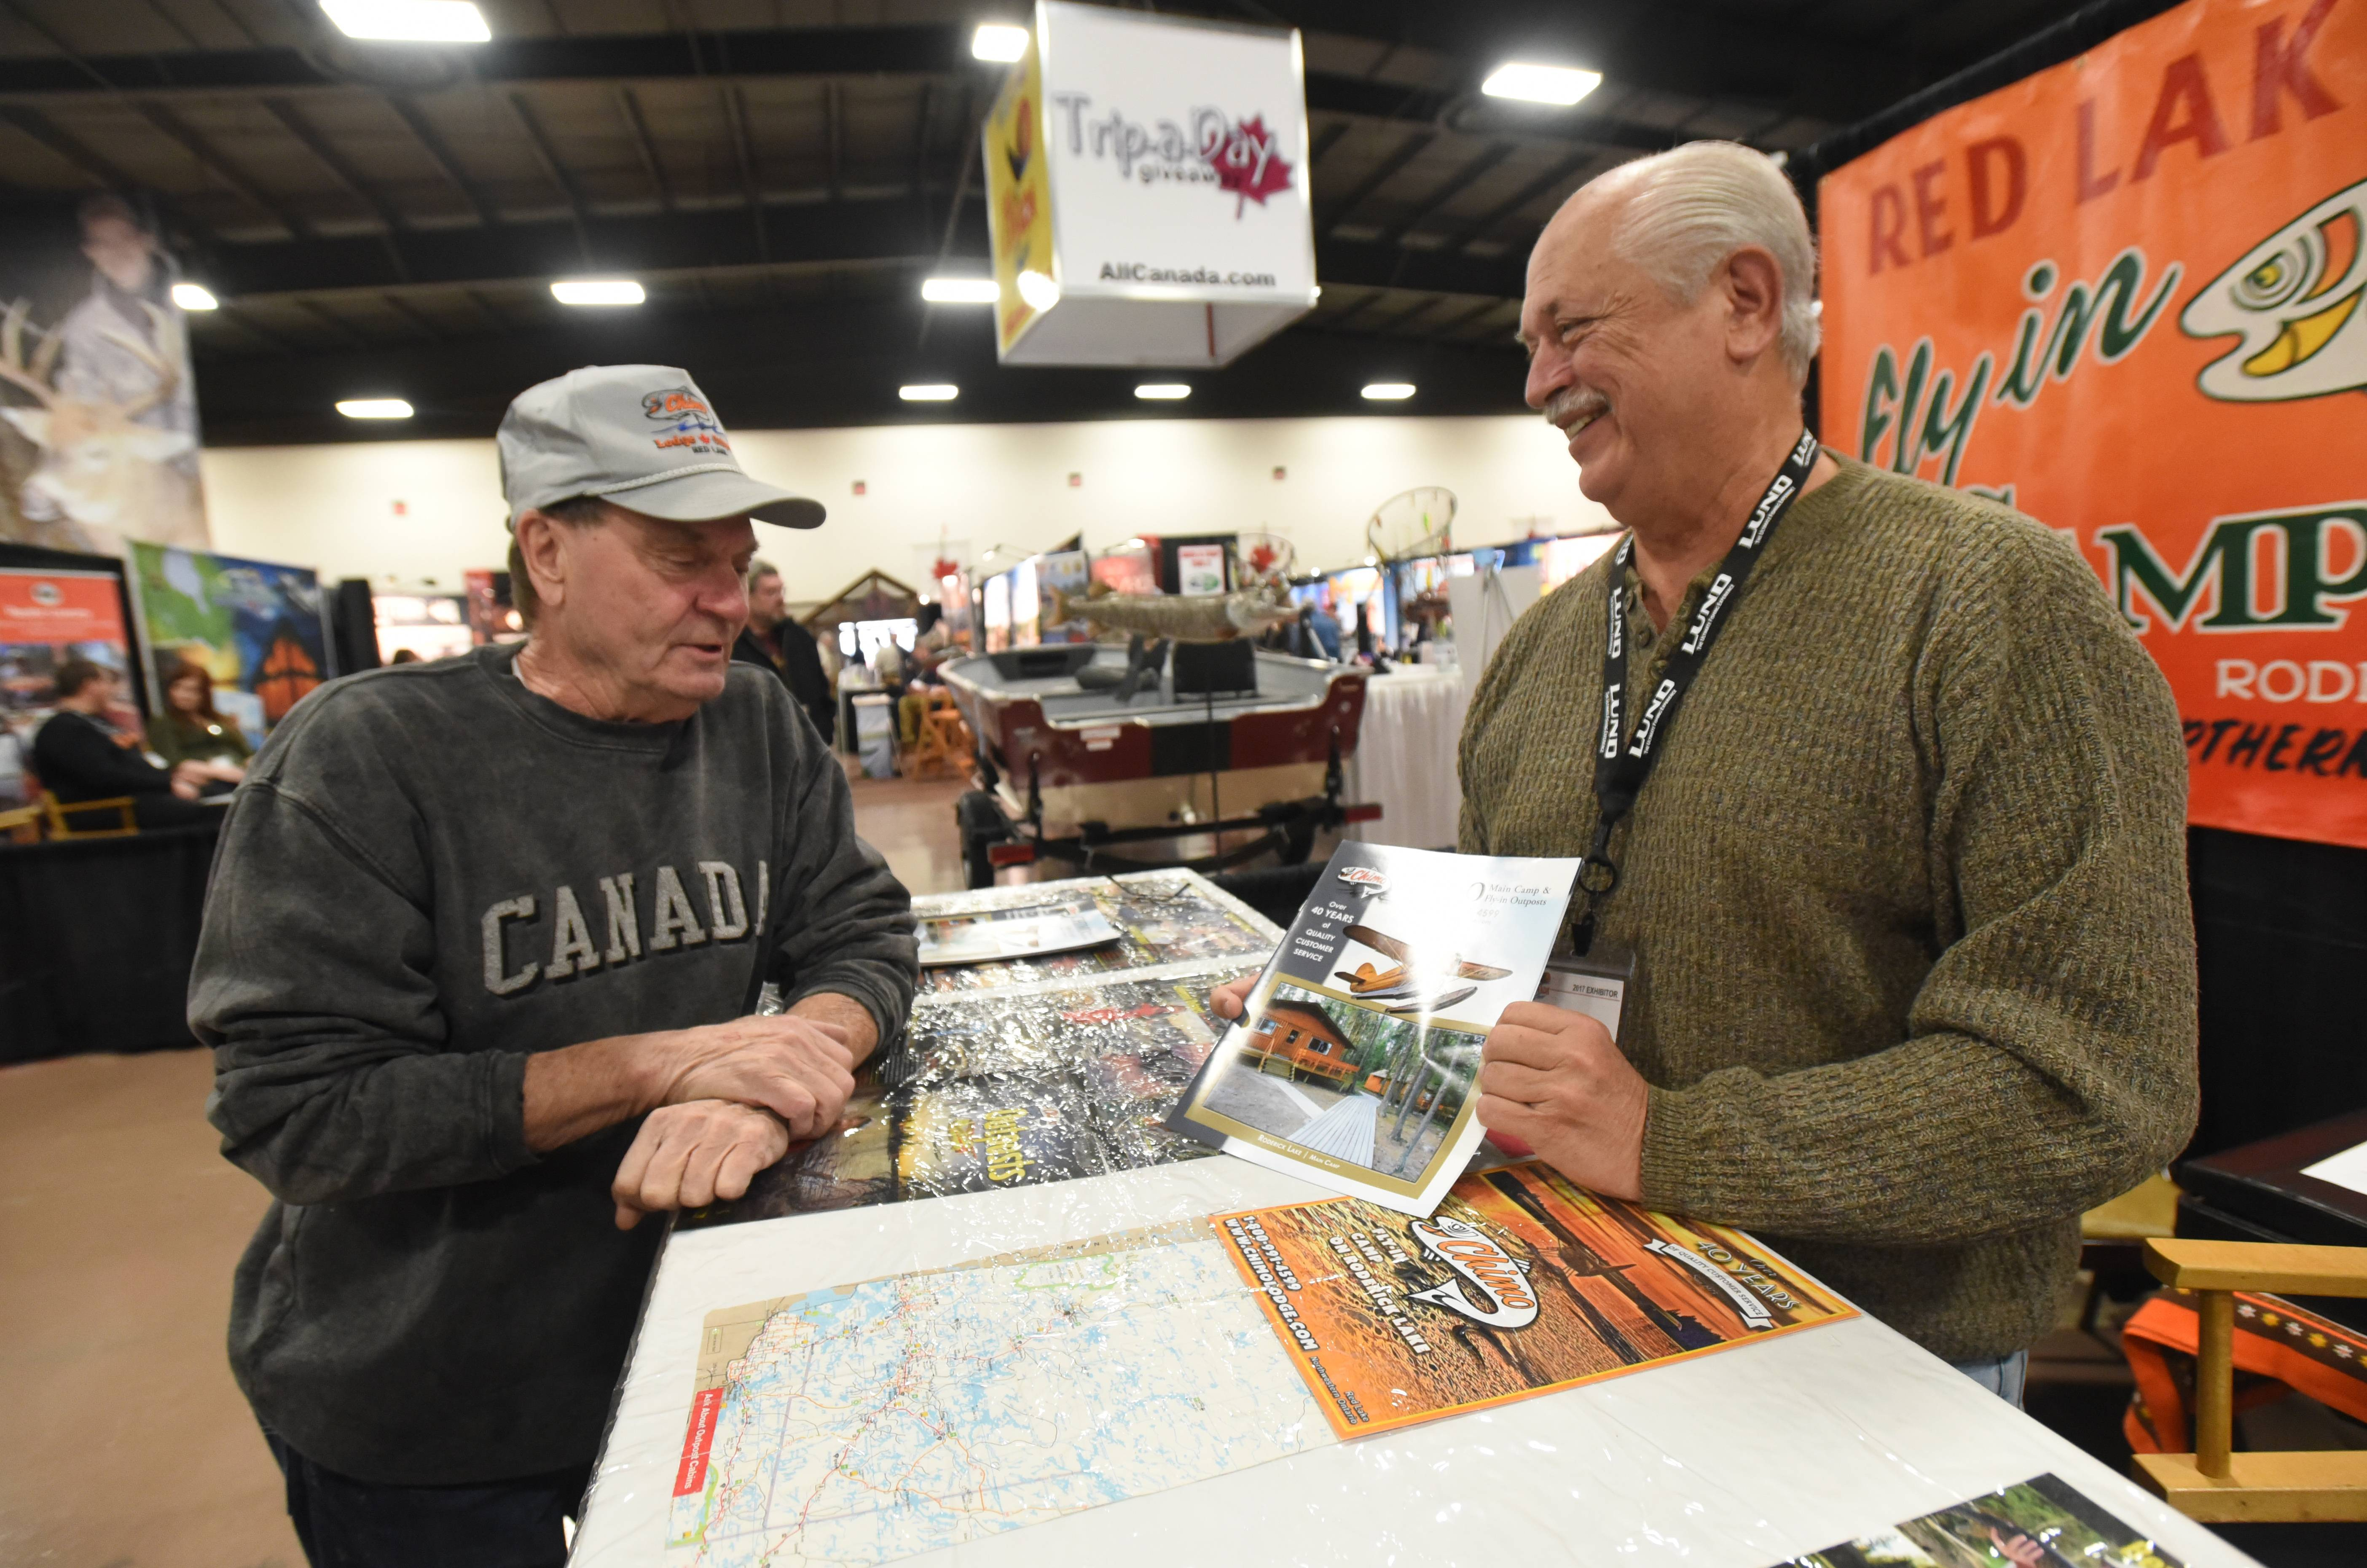 Fred Zorn of Schaumburg, left, and Nick Griffin of Red Lake, Ontario talk fishing trips at last year's All-Canada Show at the Pheasant Run Mega Center in St. Charles.